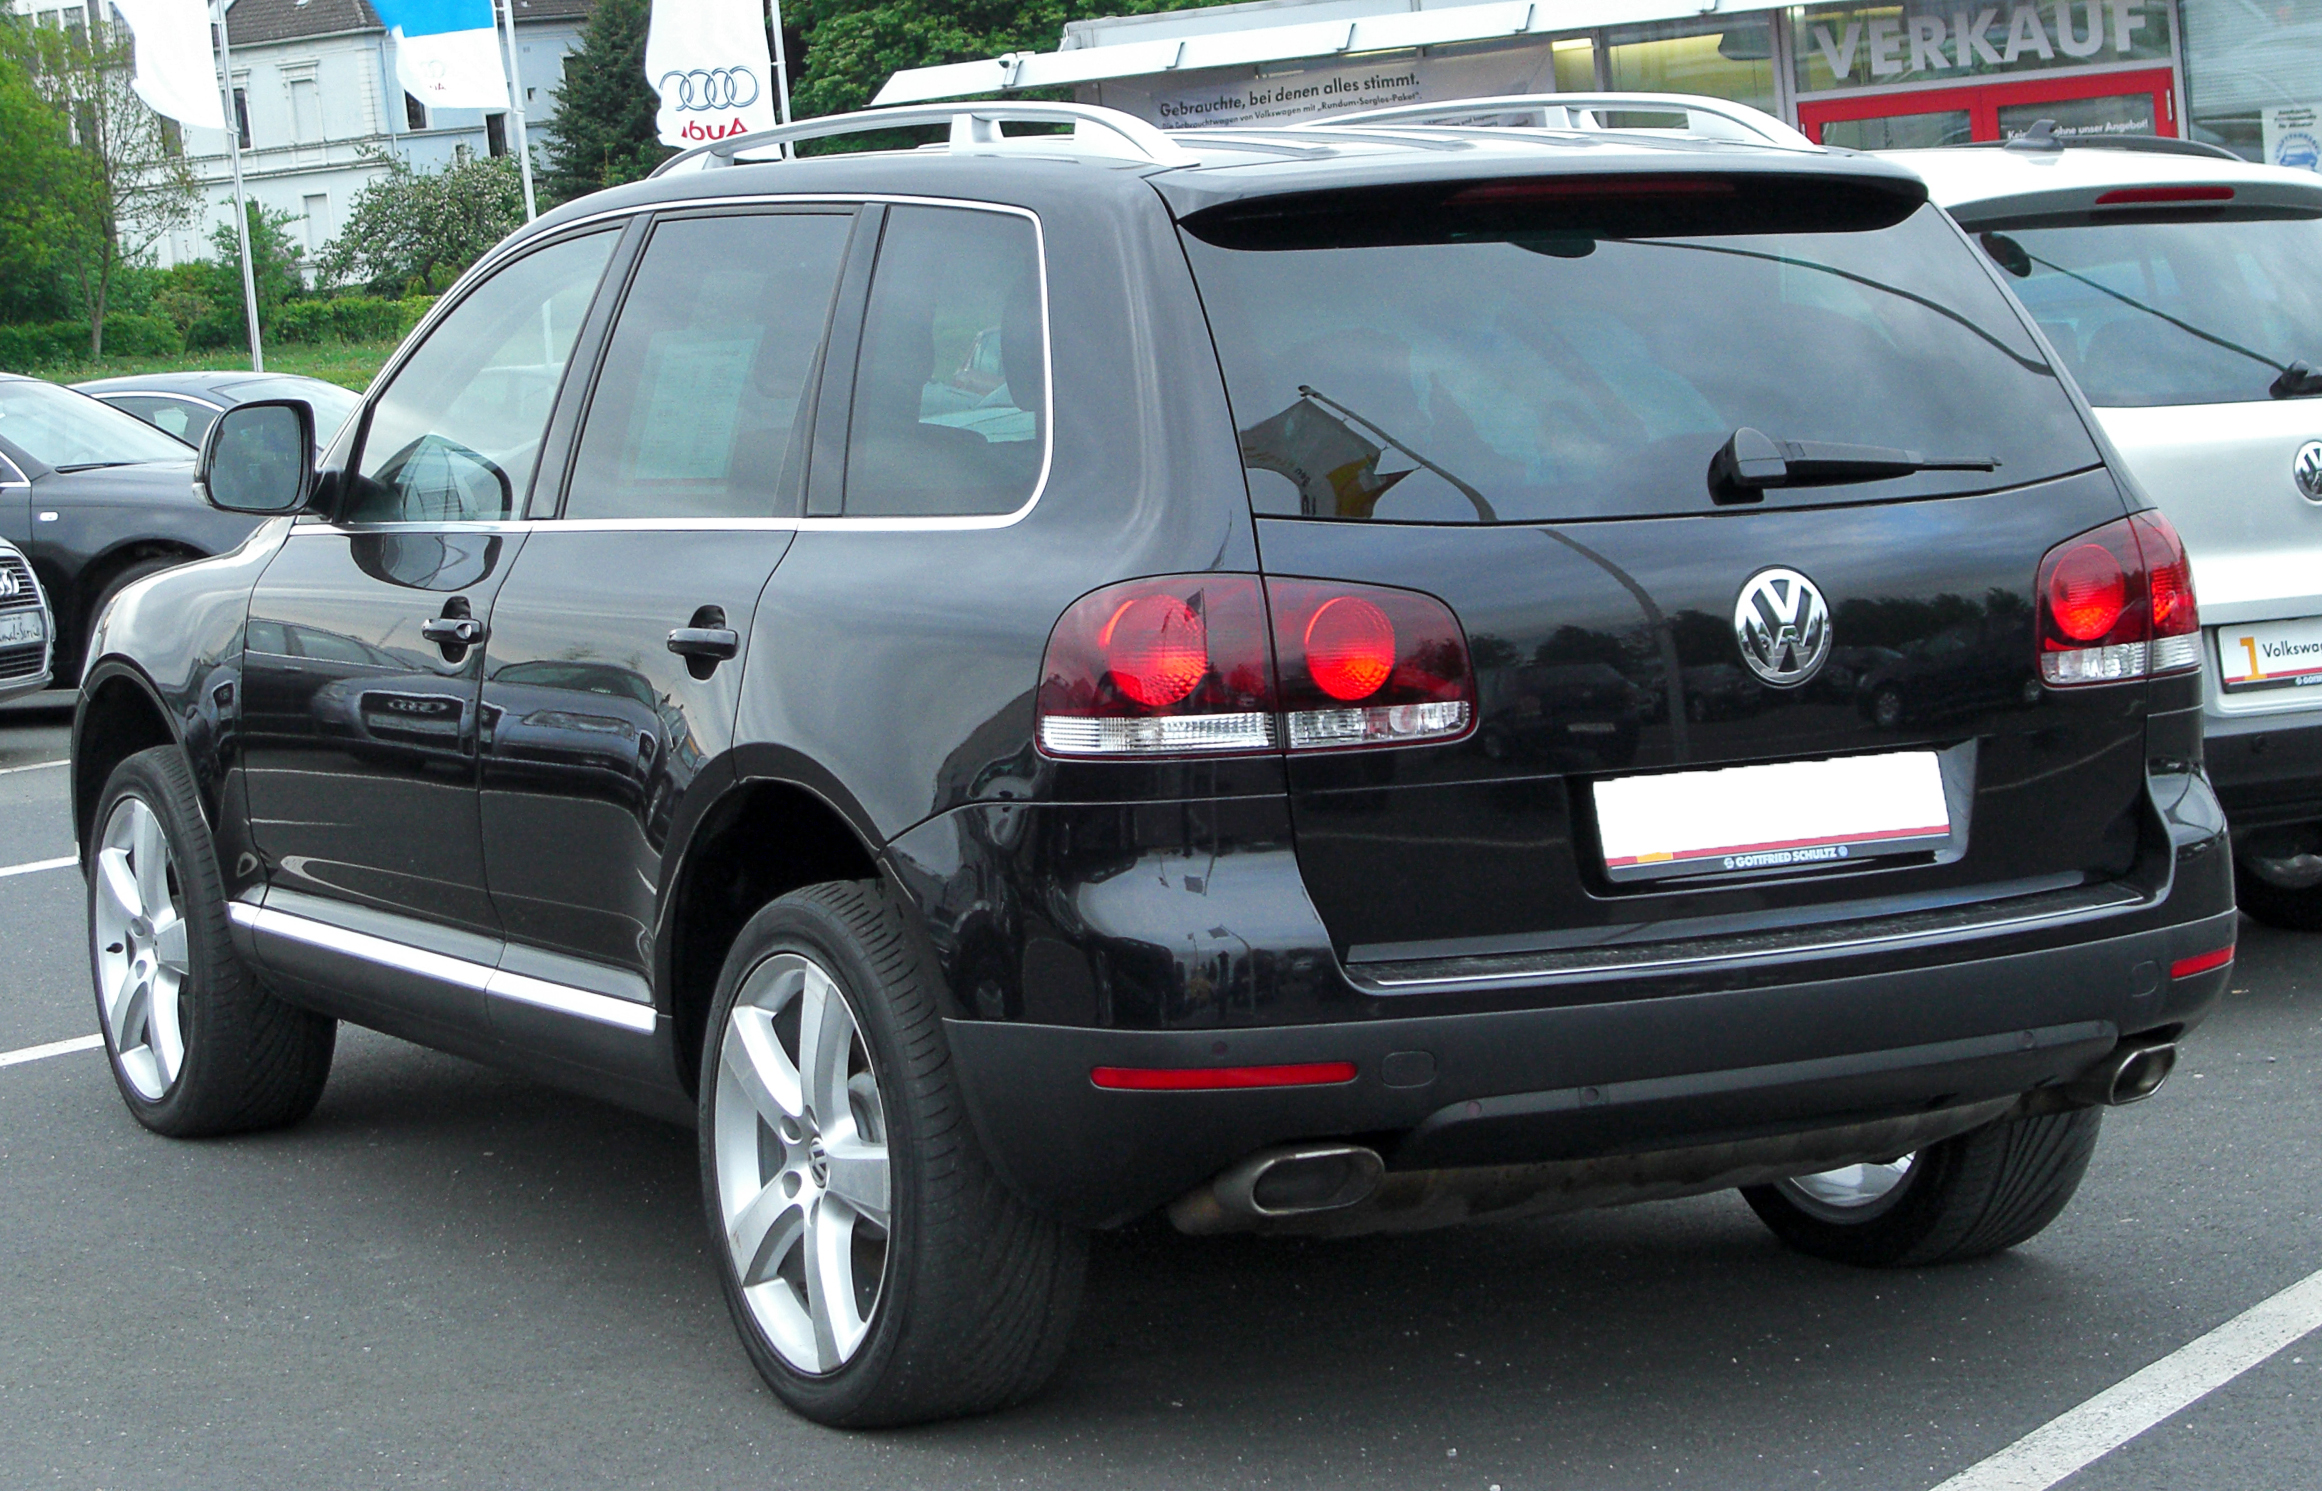 File:VW Touareg I V6 3.0 TDI Facelift rear 20100519.jpg ...